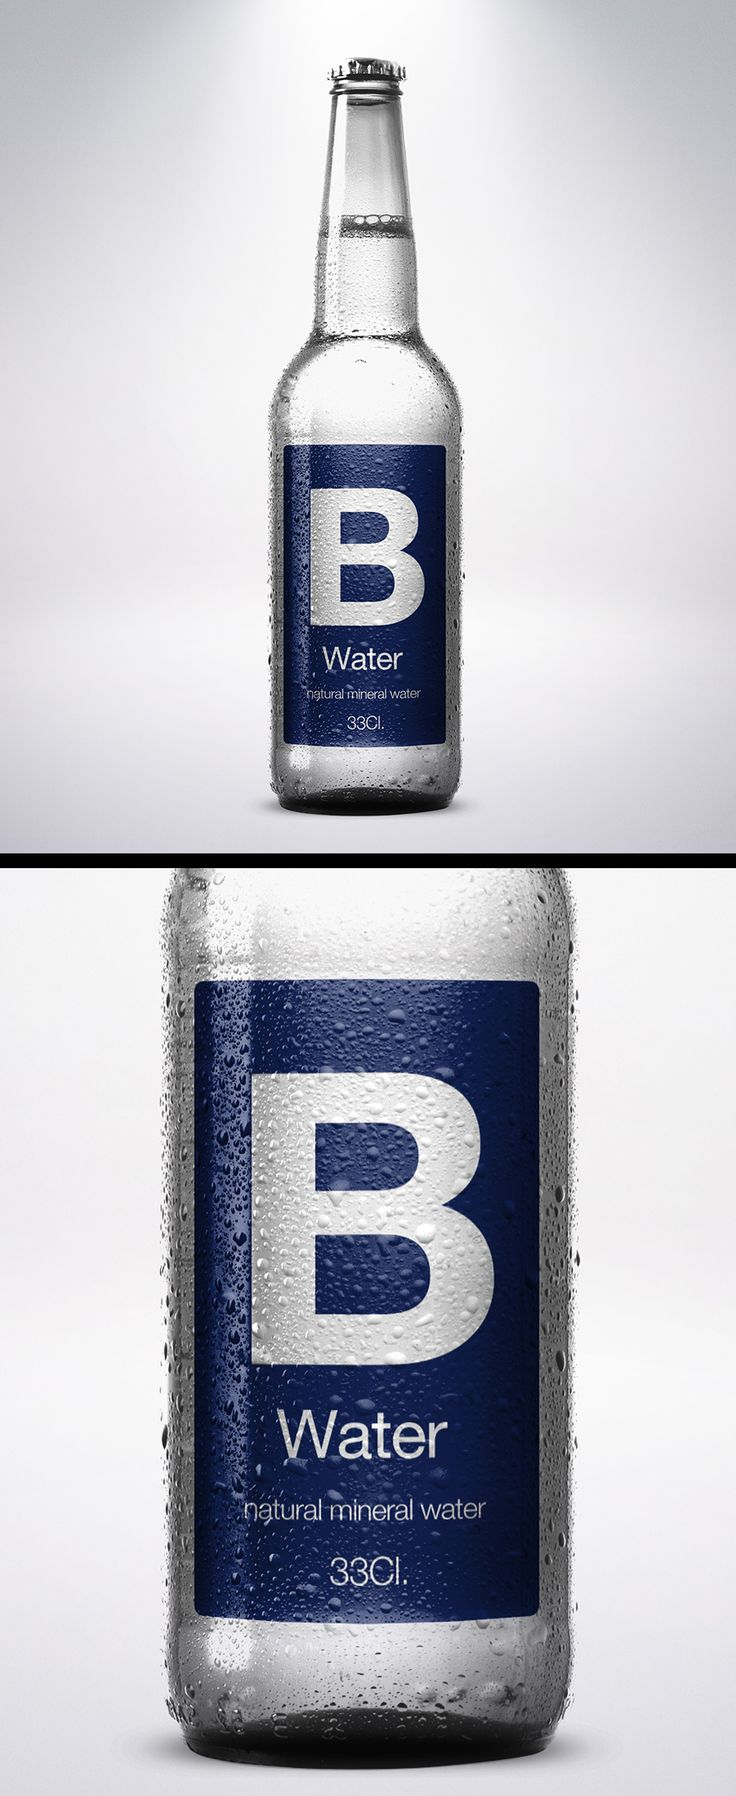 B water | Natural Mineral Water Packaging. on Behance